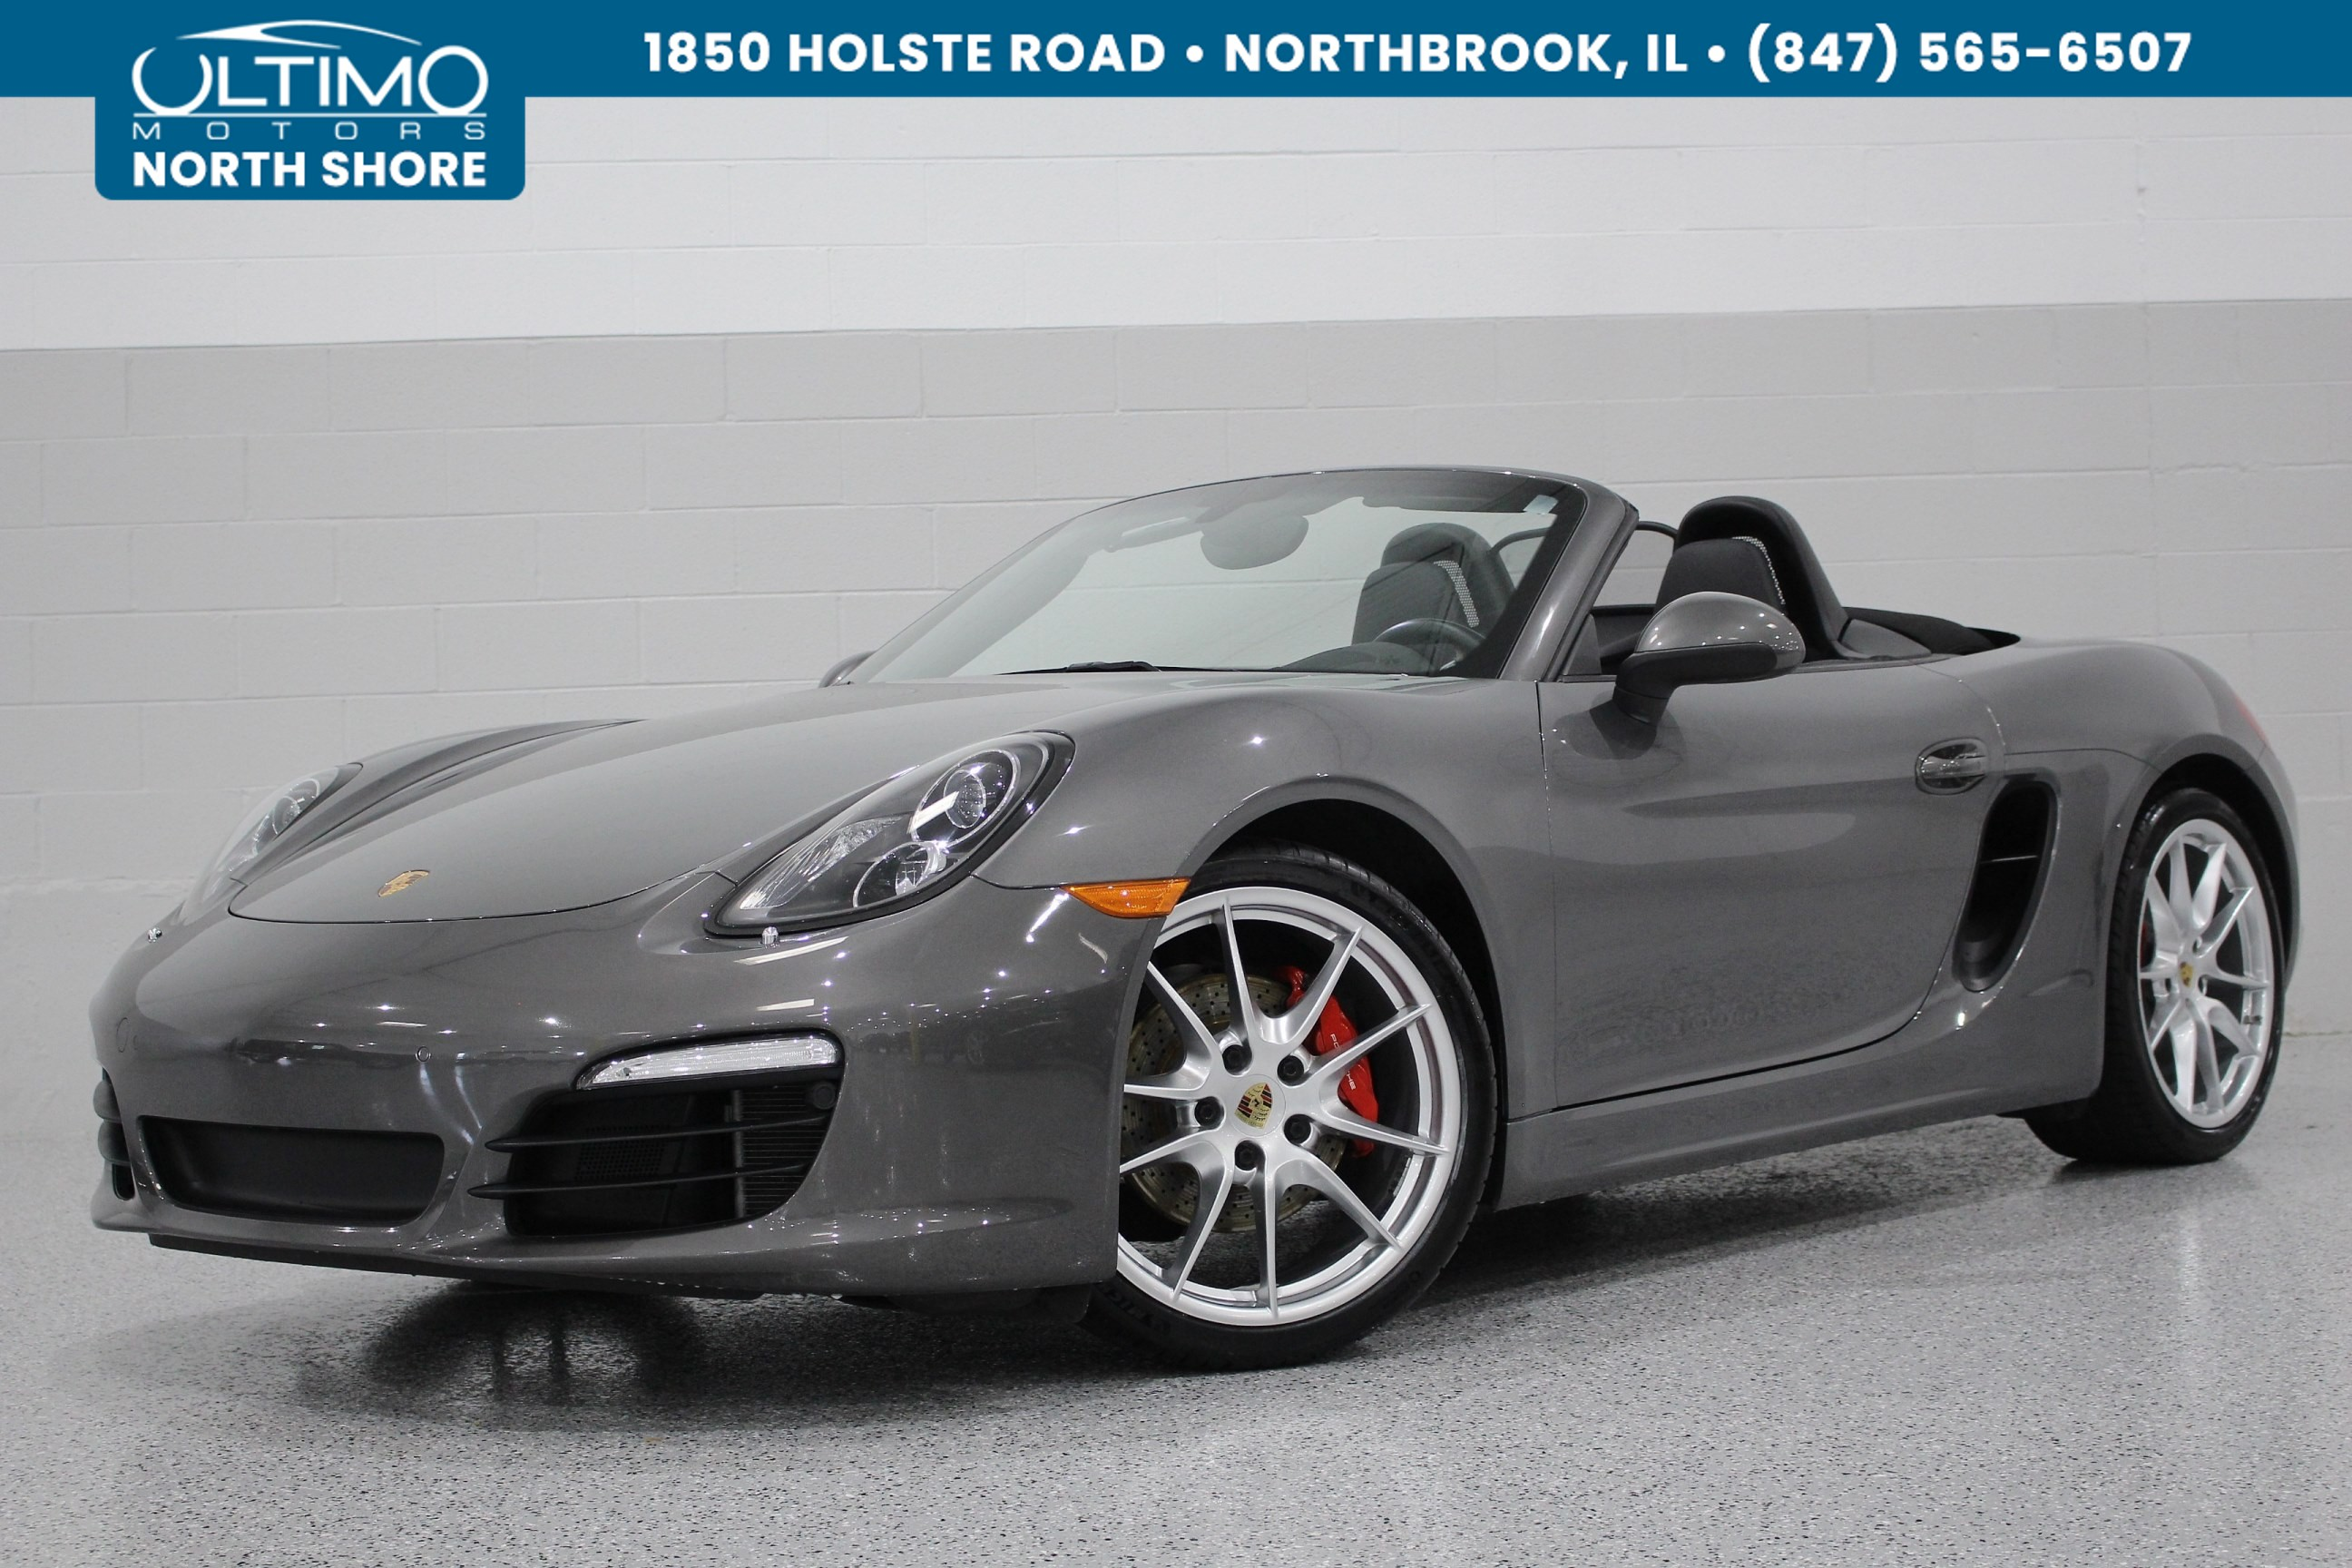 Pre-Owned 2015 Porsche Boxster S, 20 In Carrera Wheels, PDLS, ParkAssist, Sport Seats, Premium +, Bose.